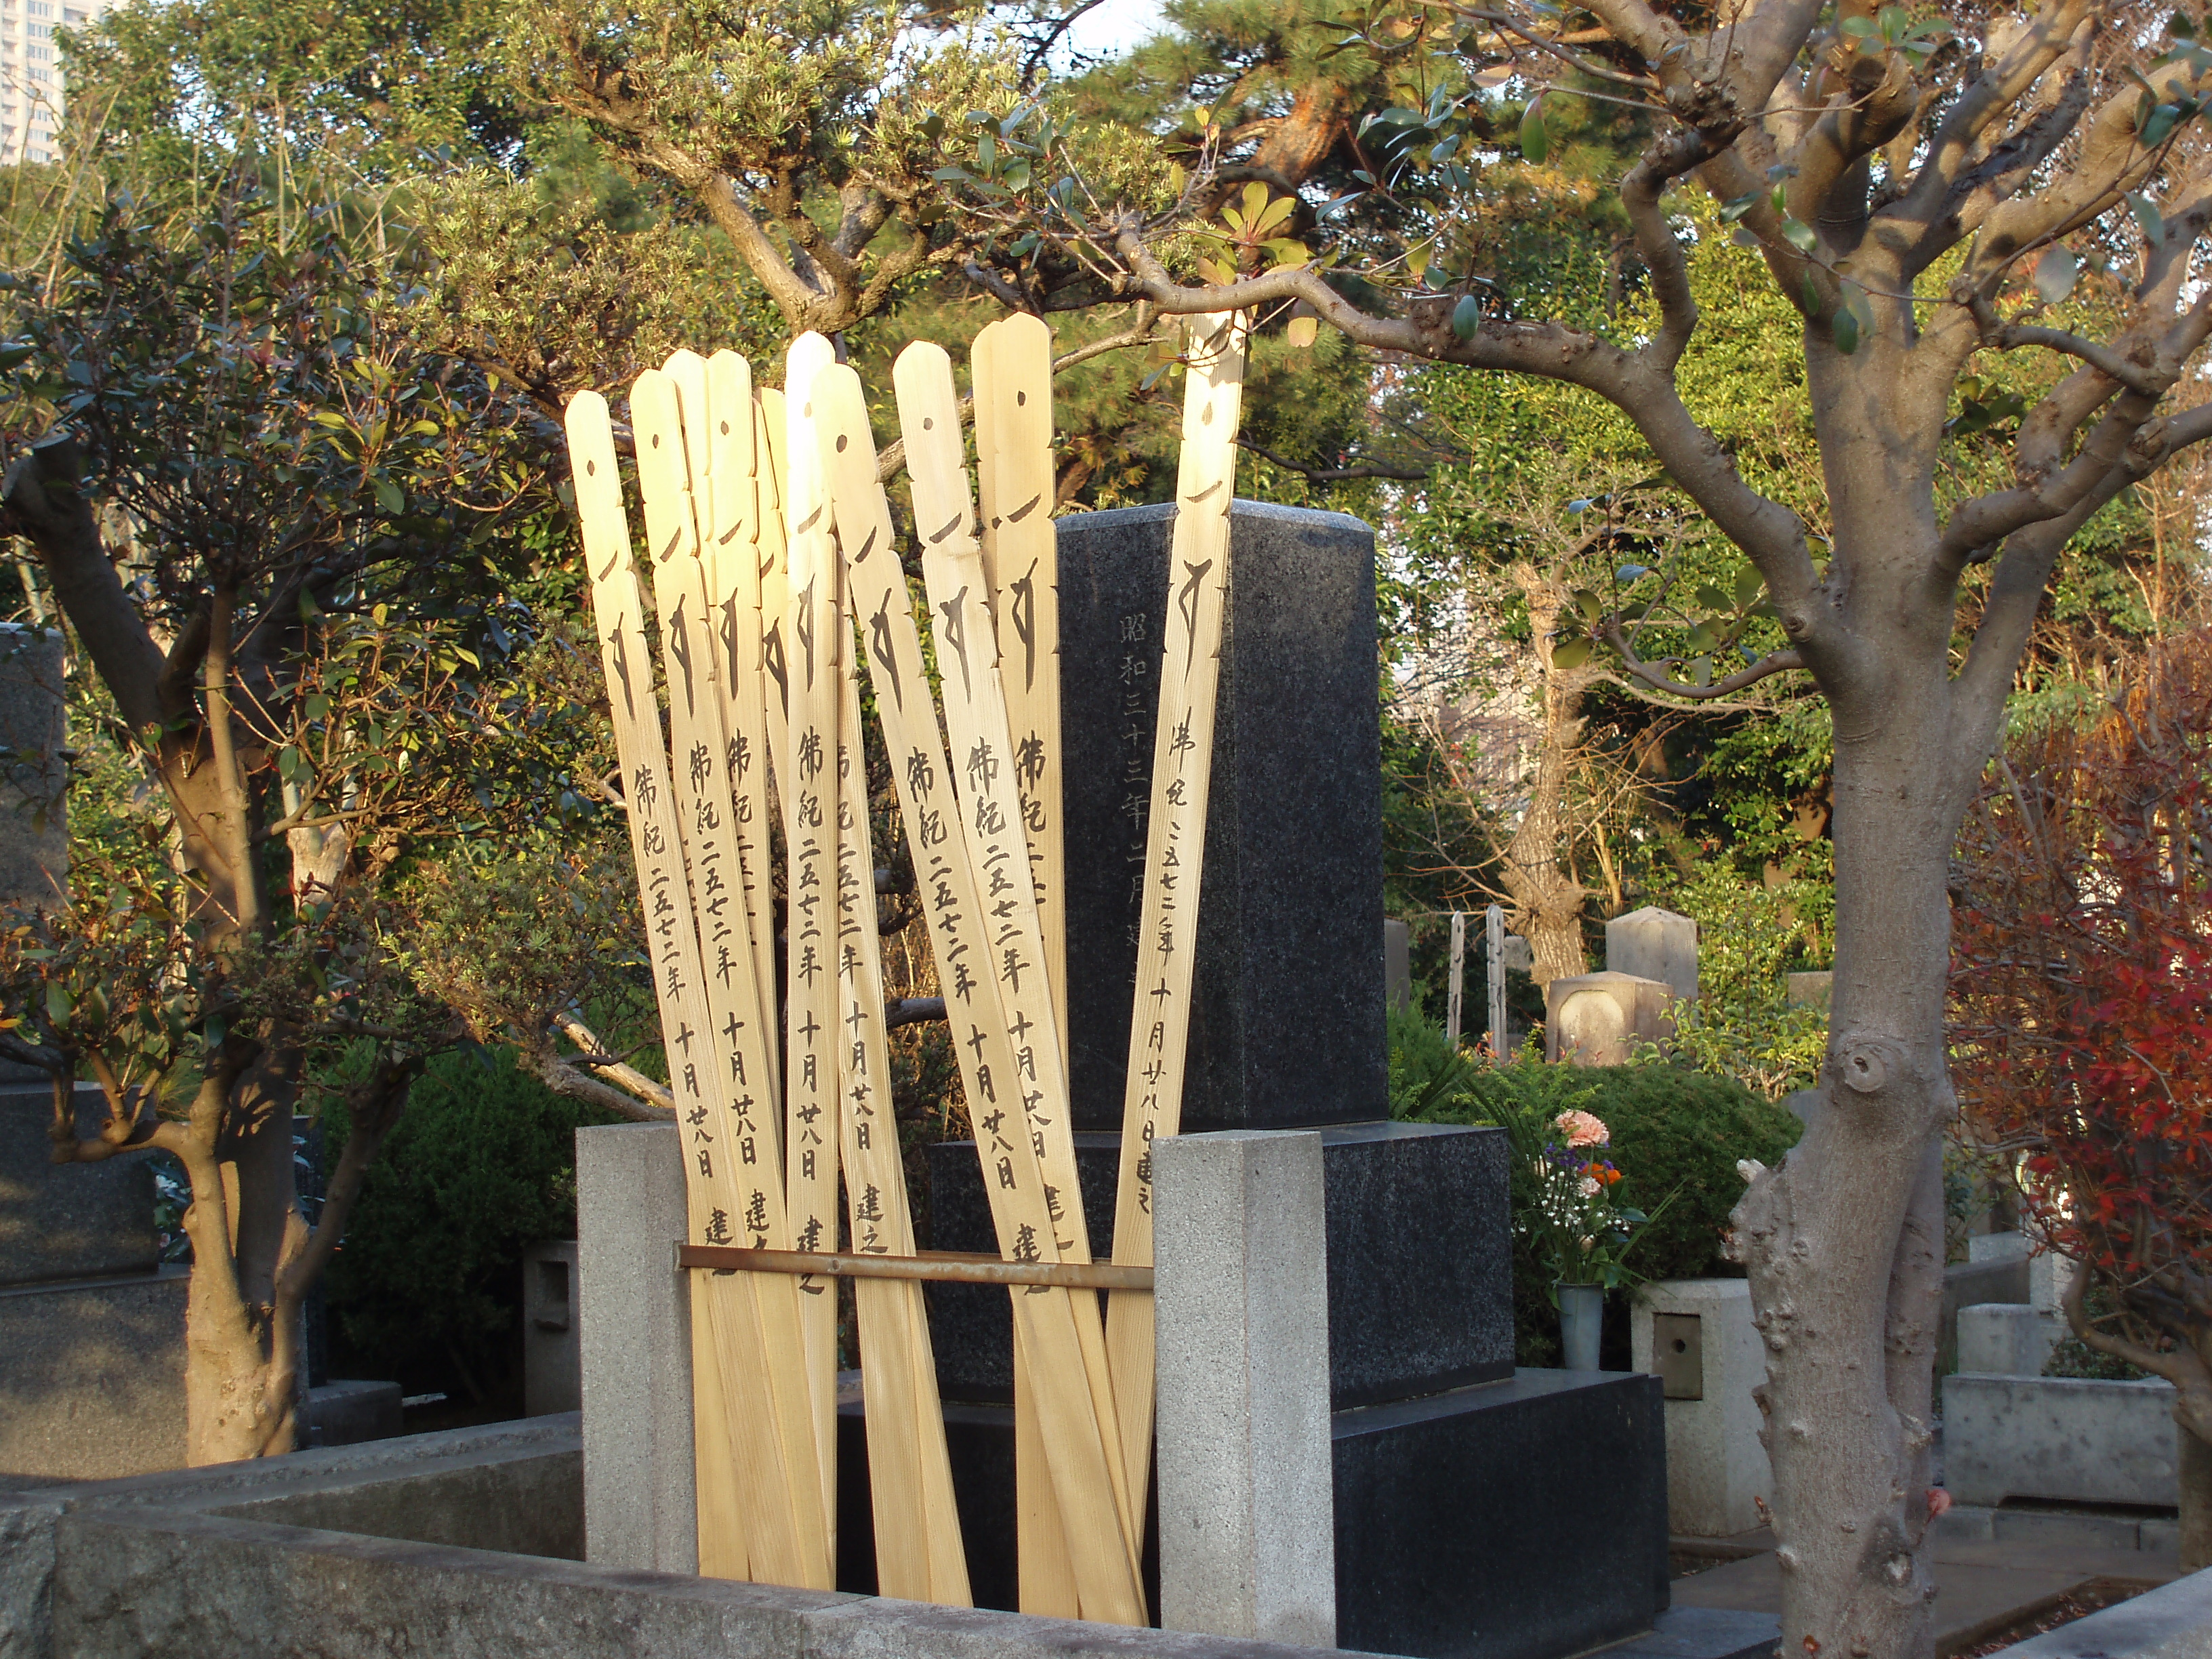 traditional wooden burial sticks in a tokyo cemetery